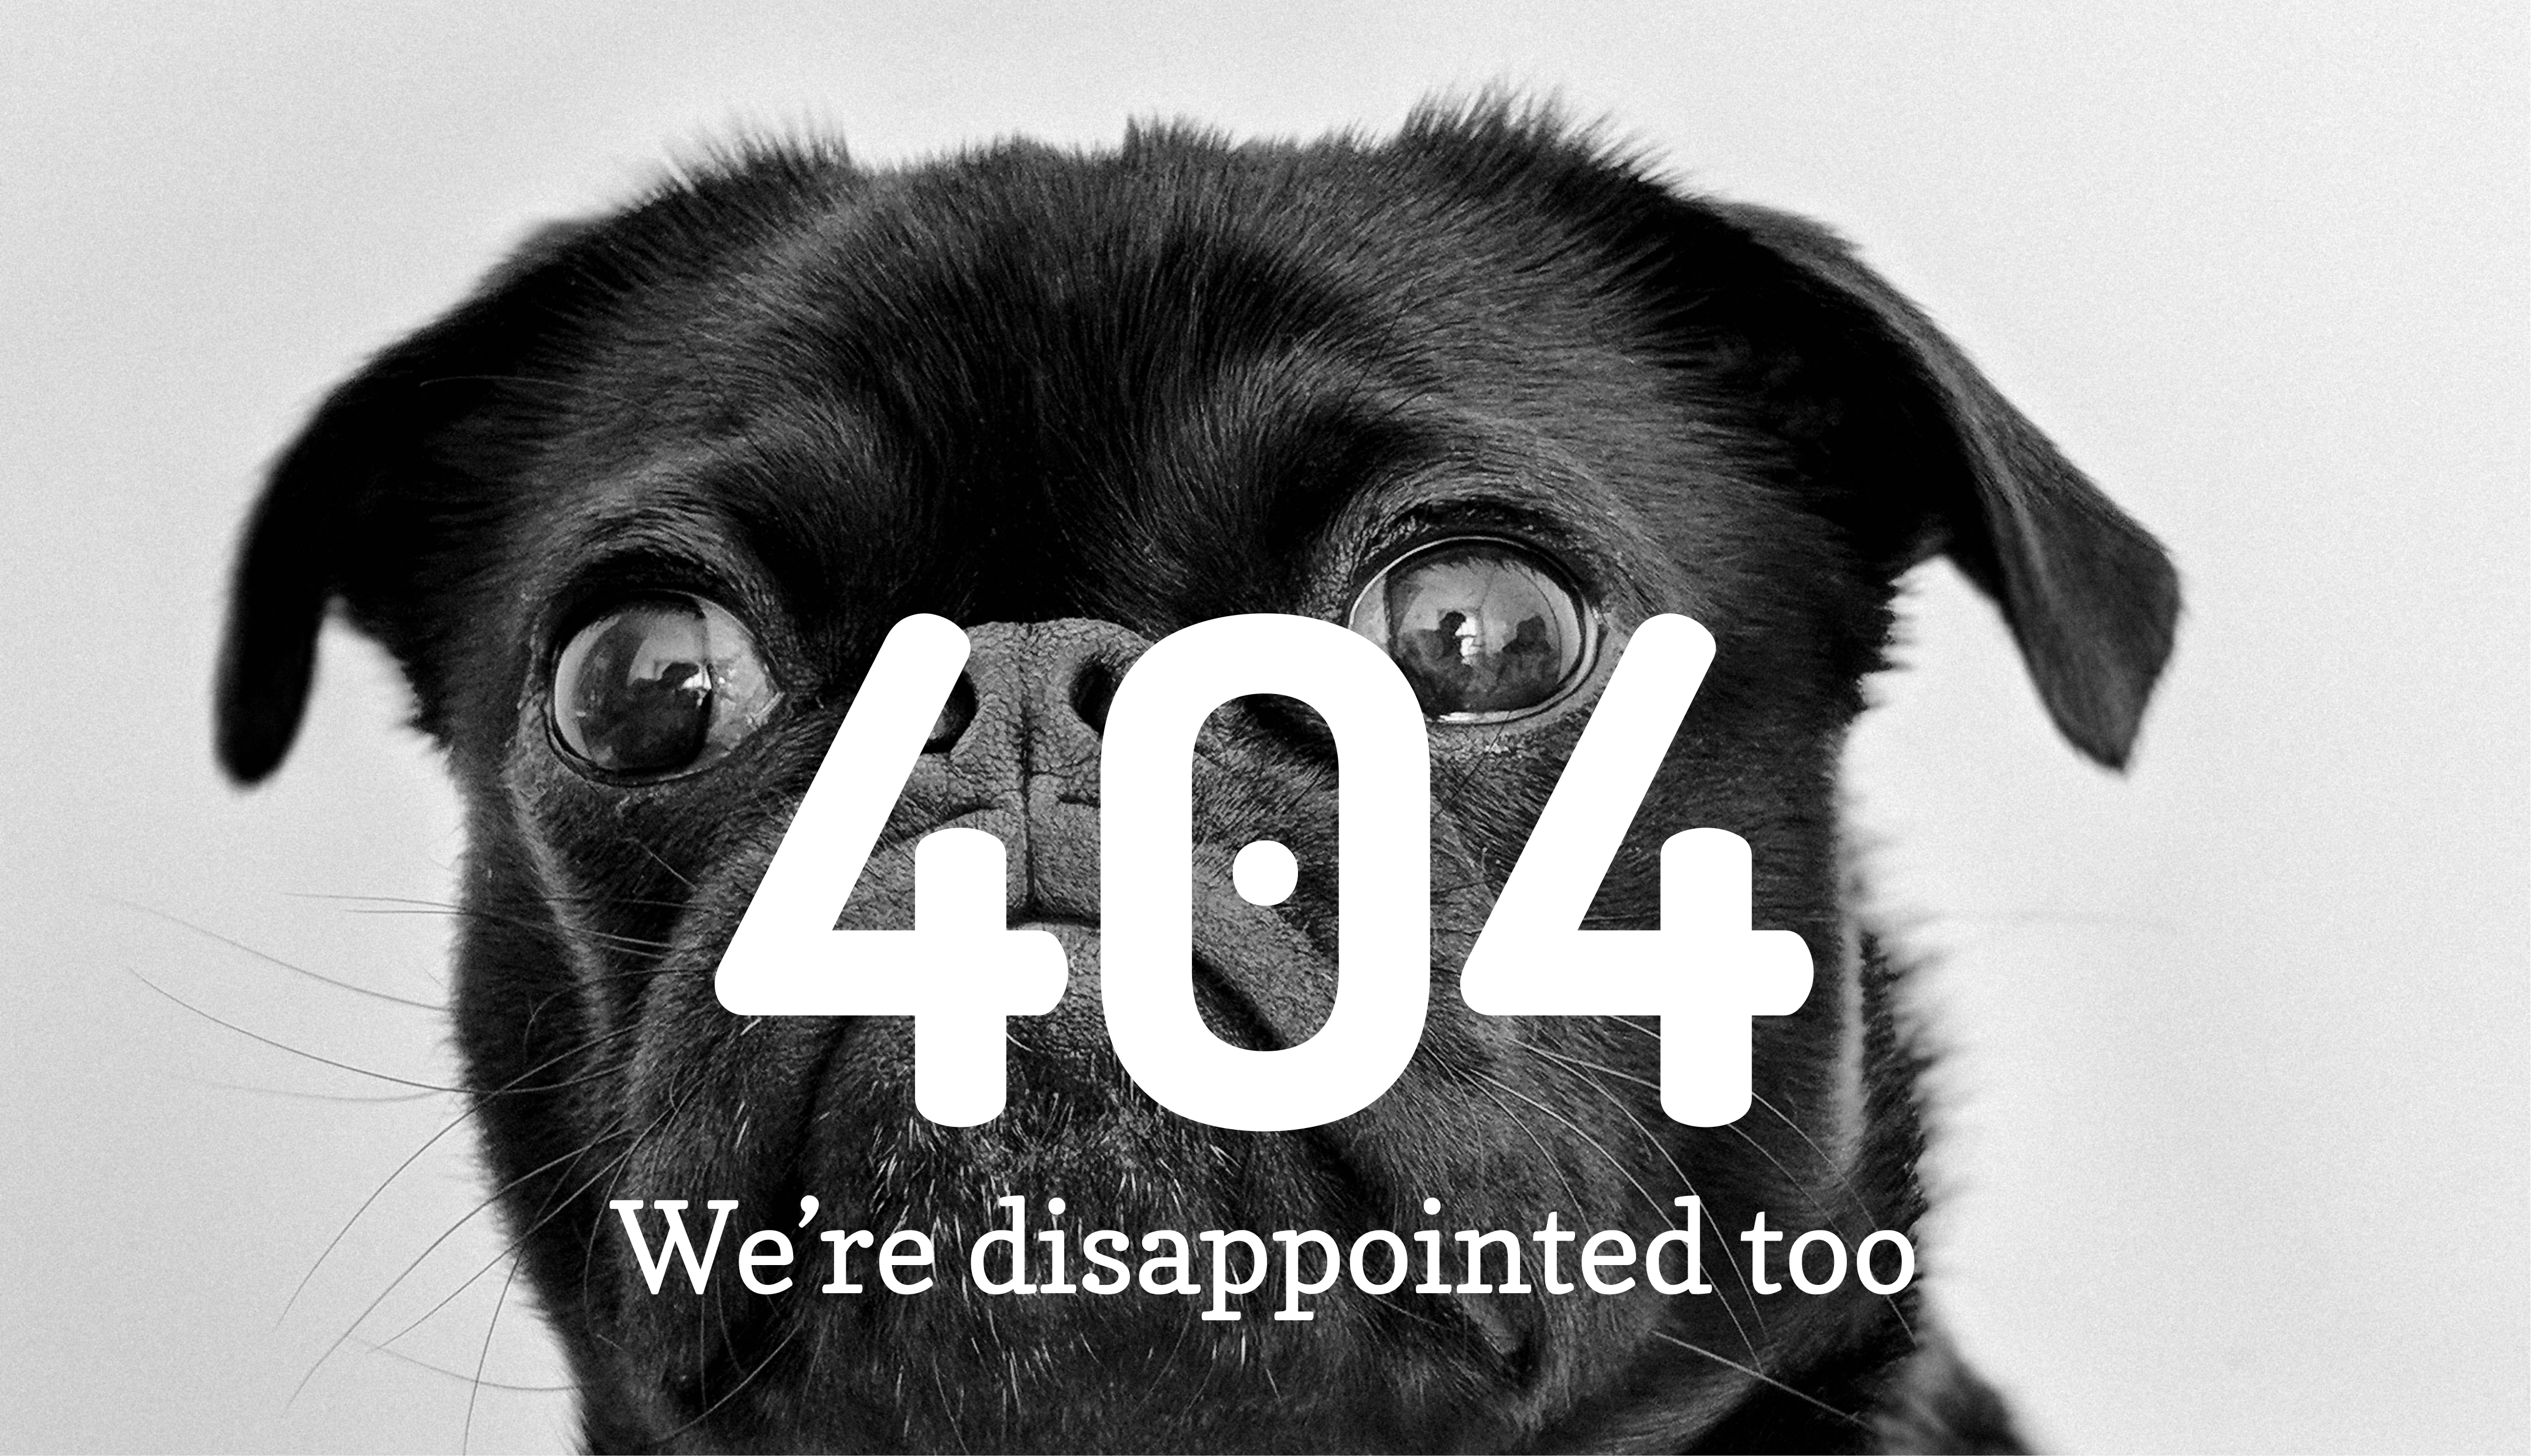 error 404 page not found - image of a sad pug